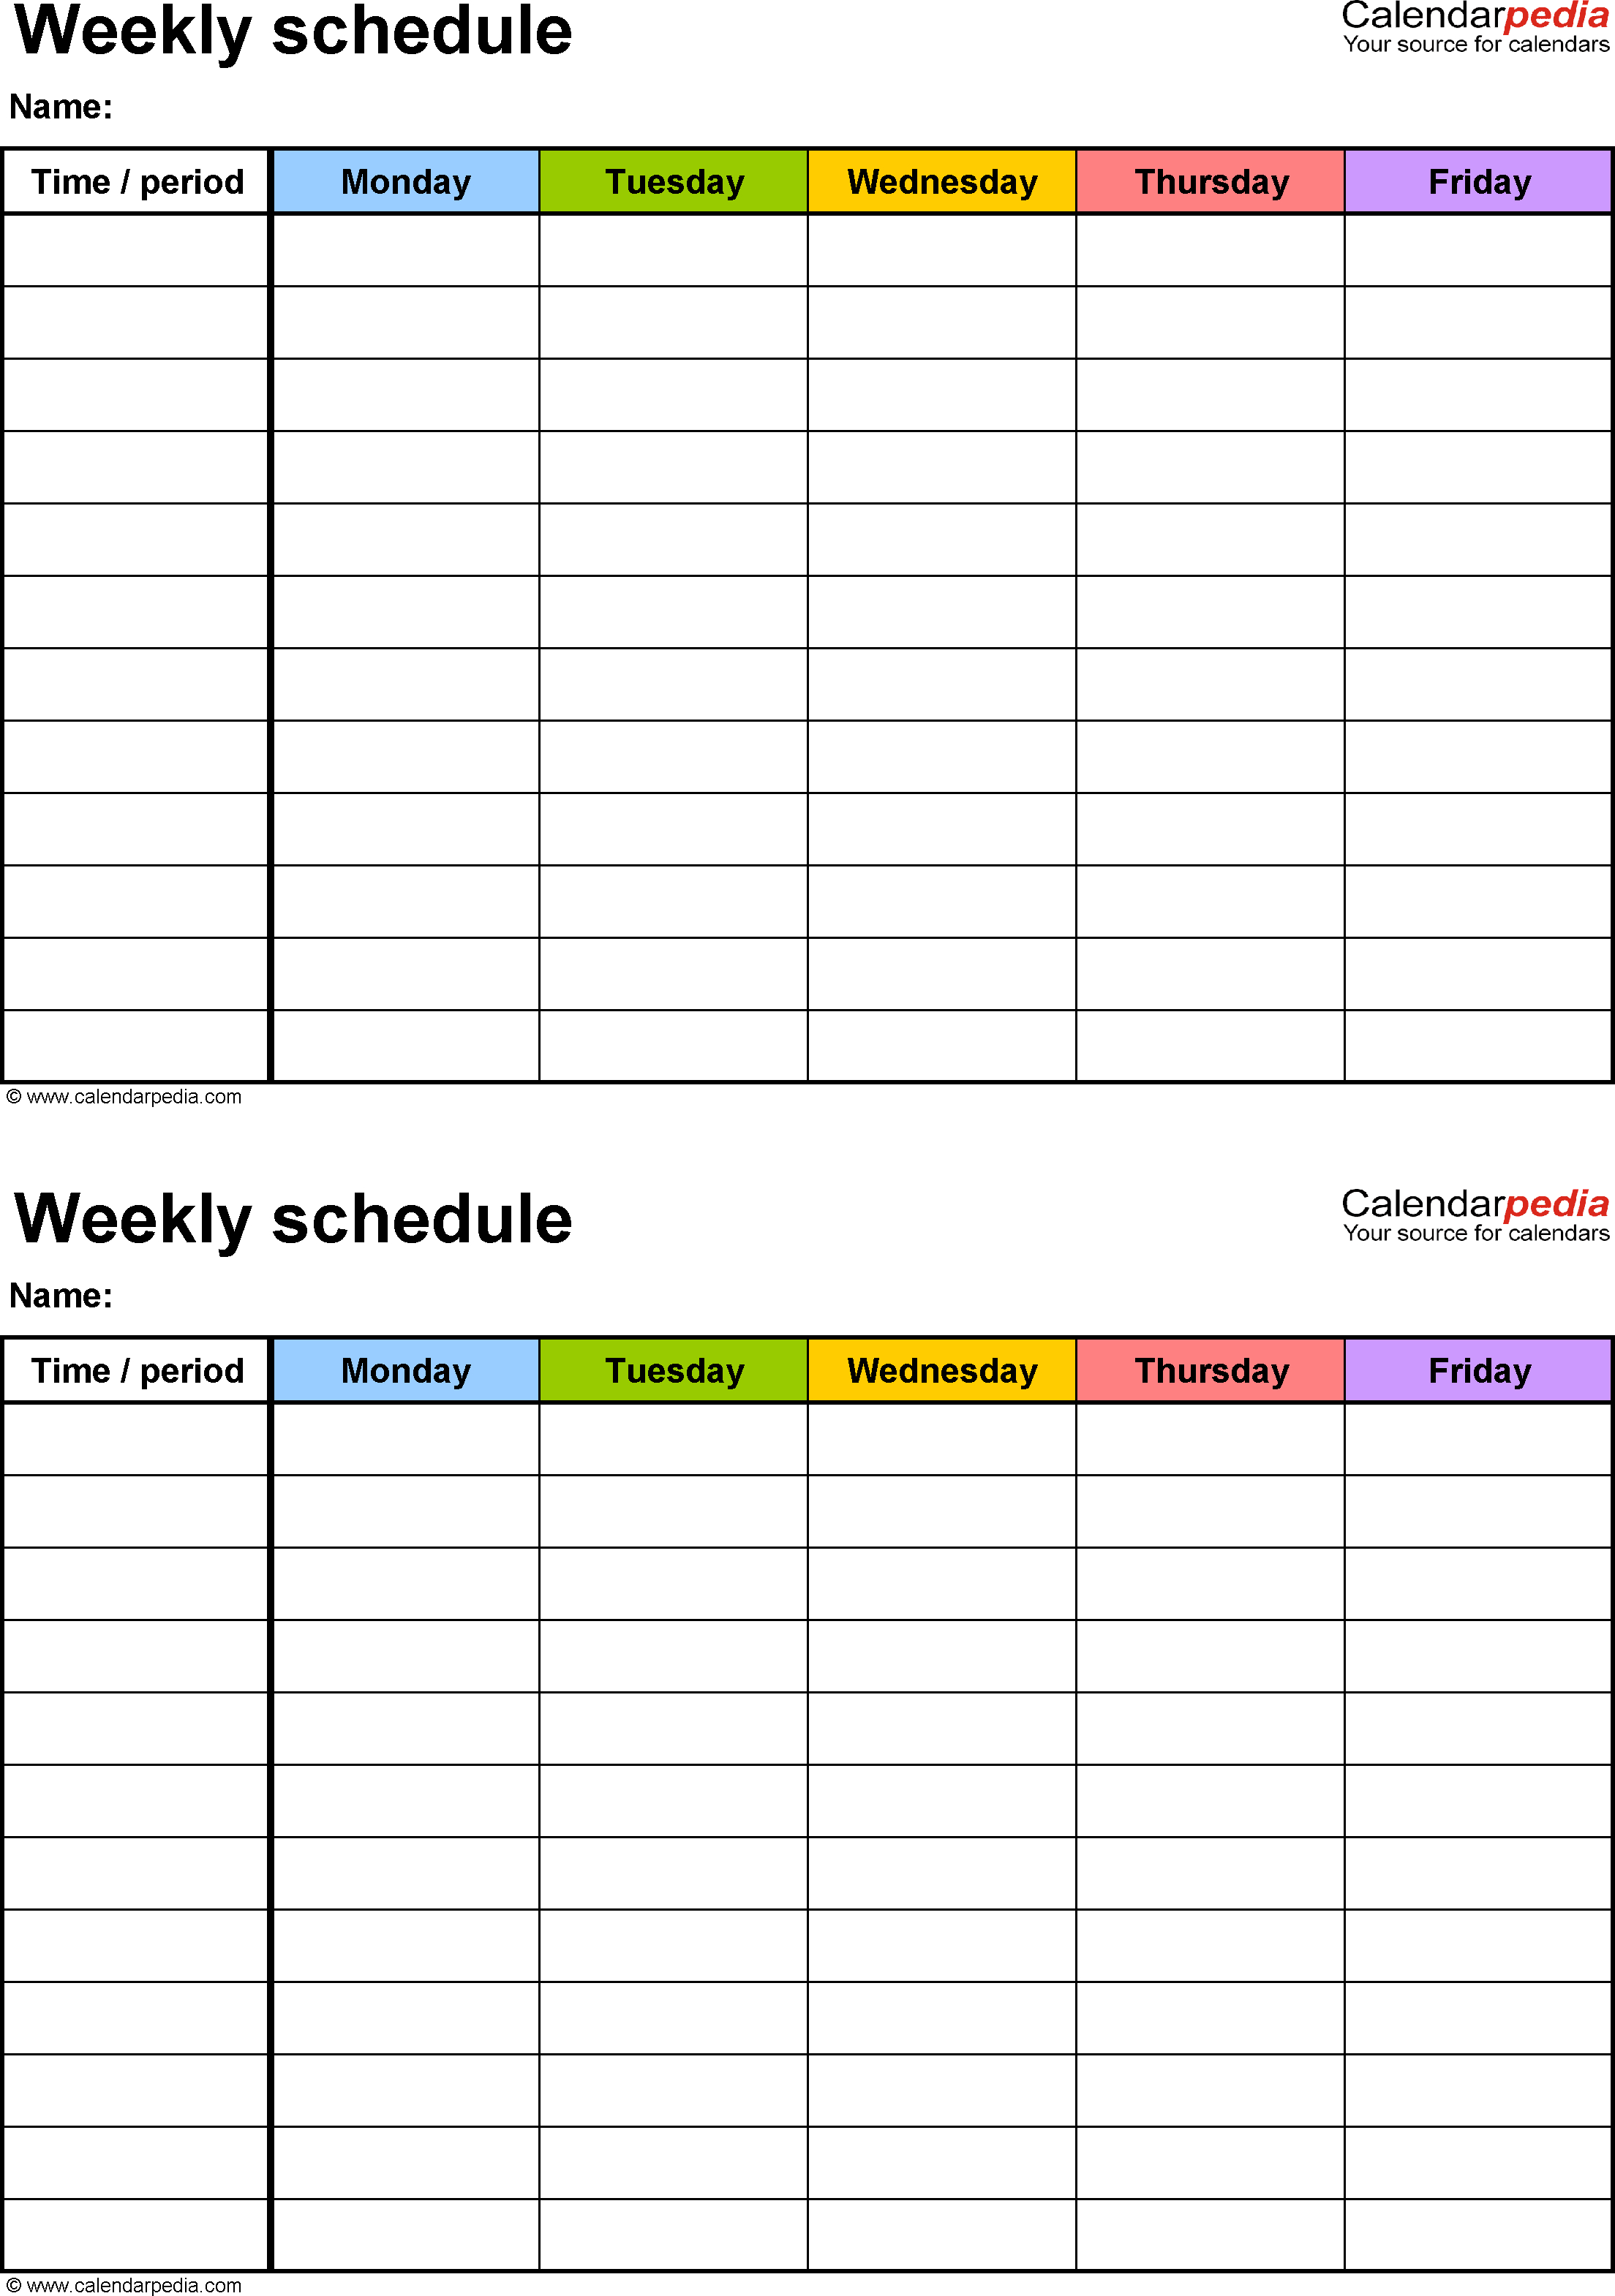 Free Weekly Schedule Templates For Word  18 Templates within 5 Day Monthly Calendar